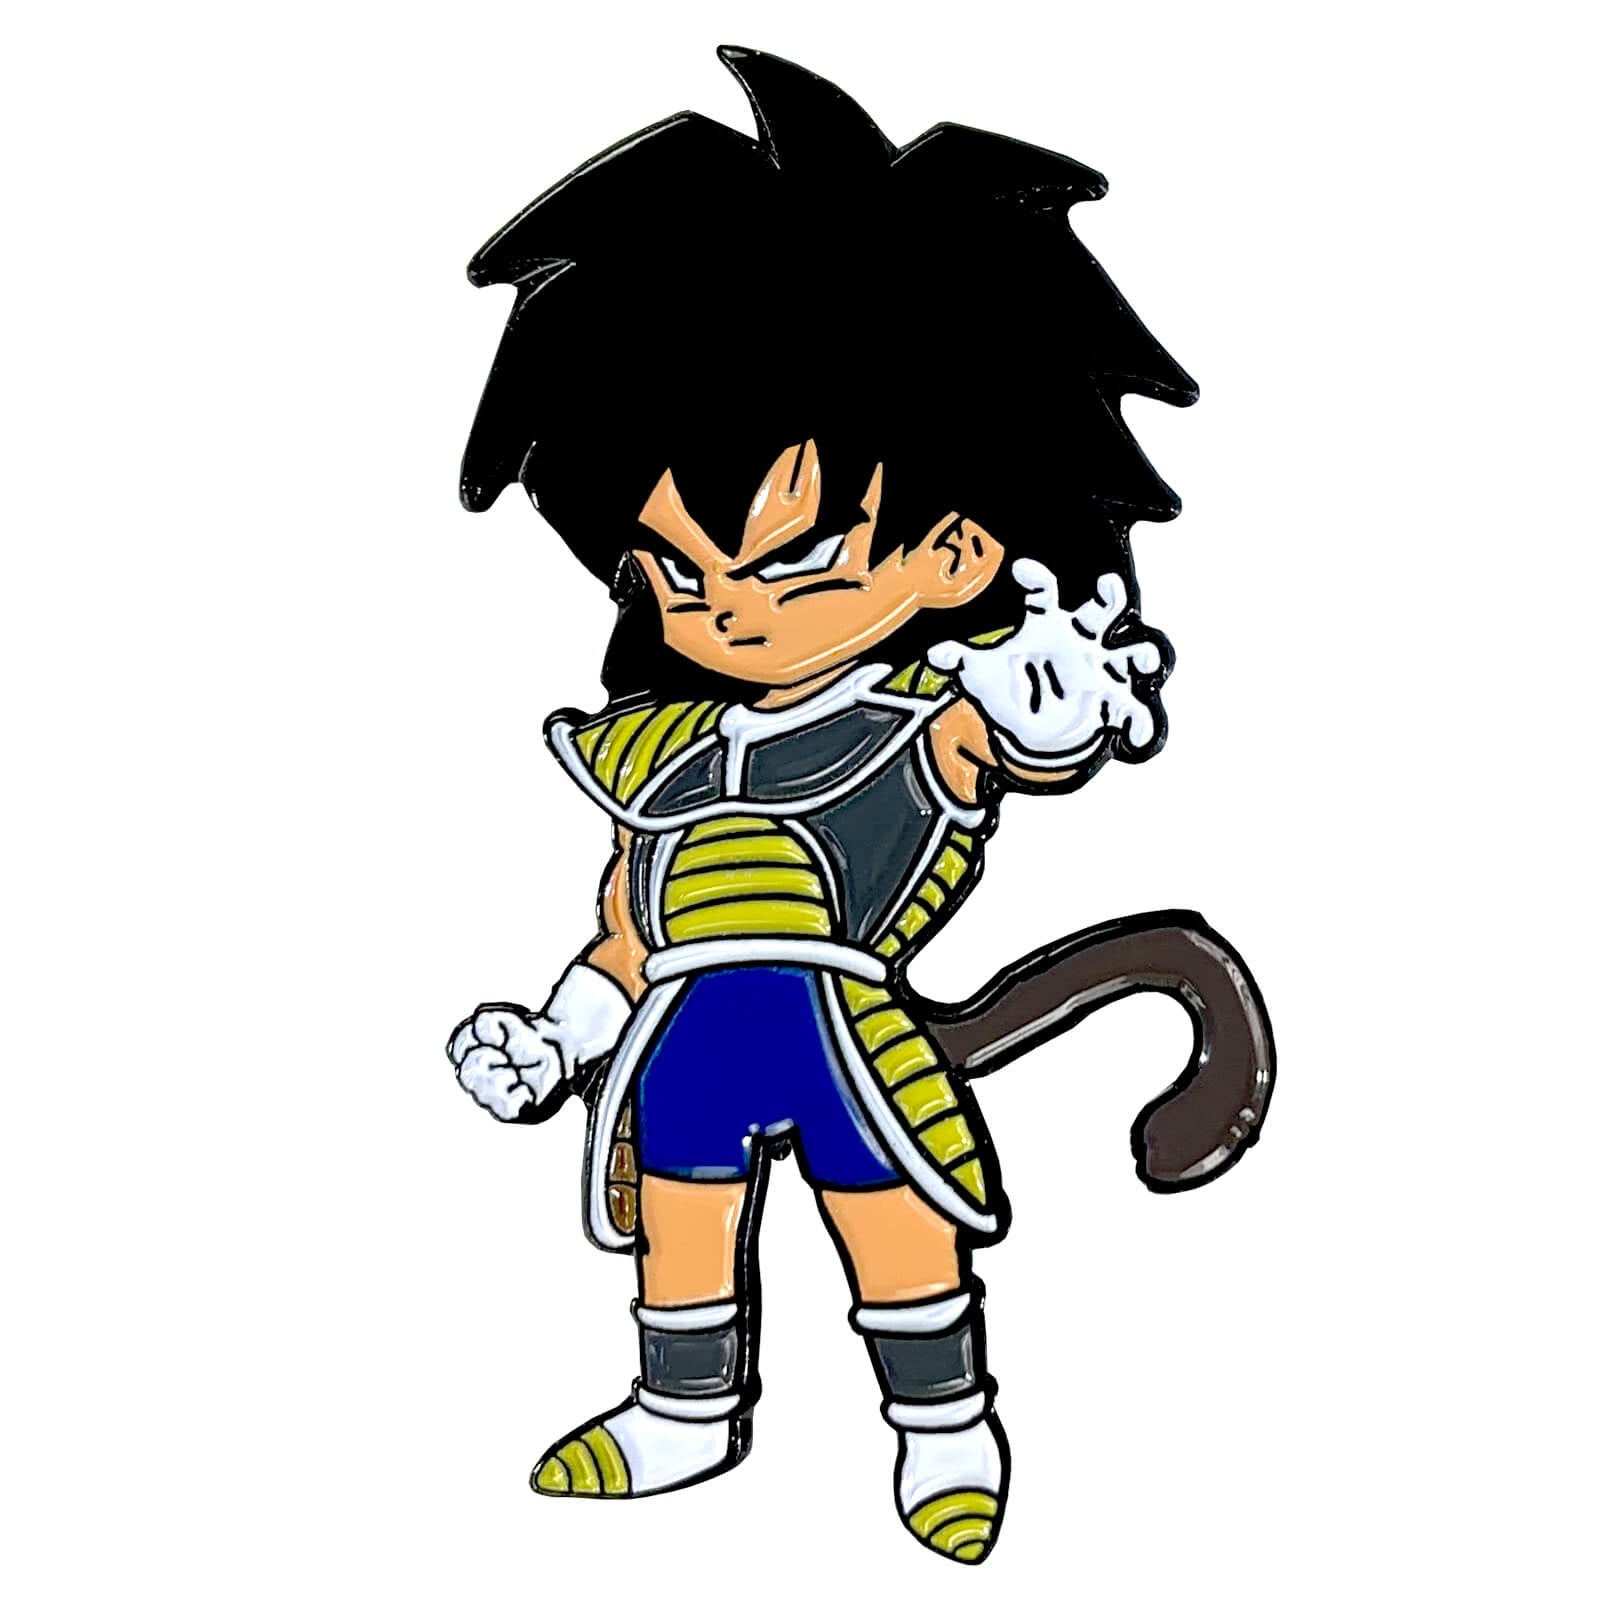 Broly Kid Saiyan (DBS Broly Movie) Enamel Pin